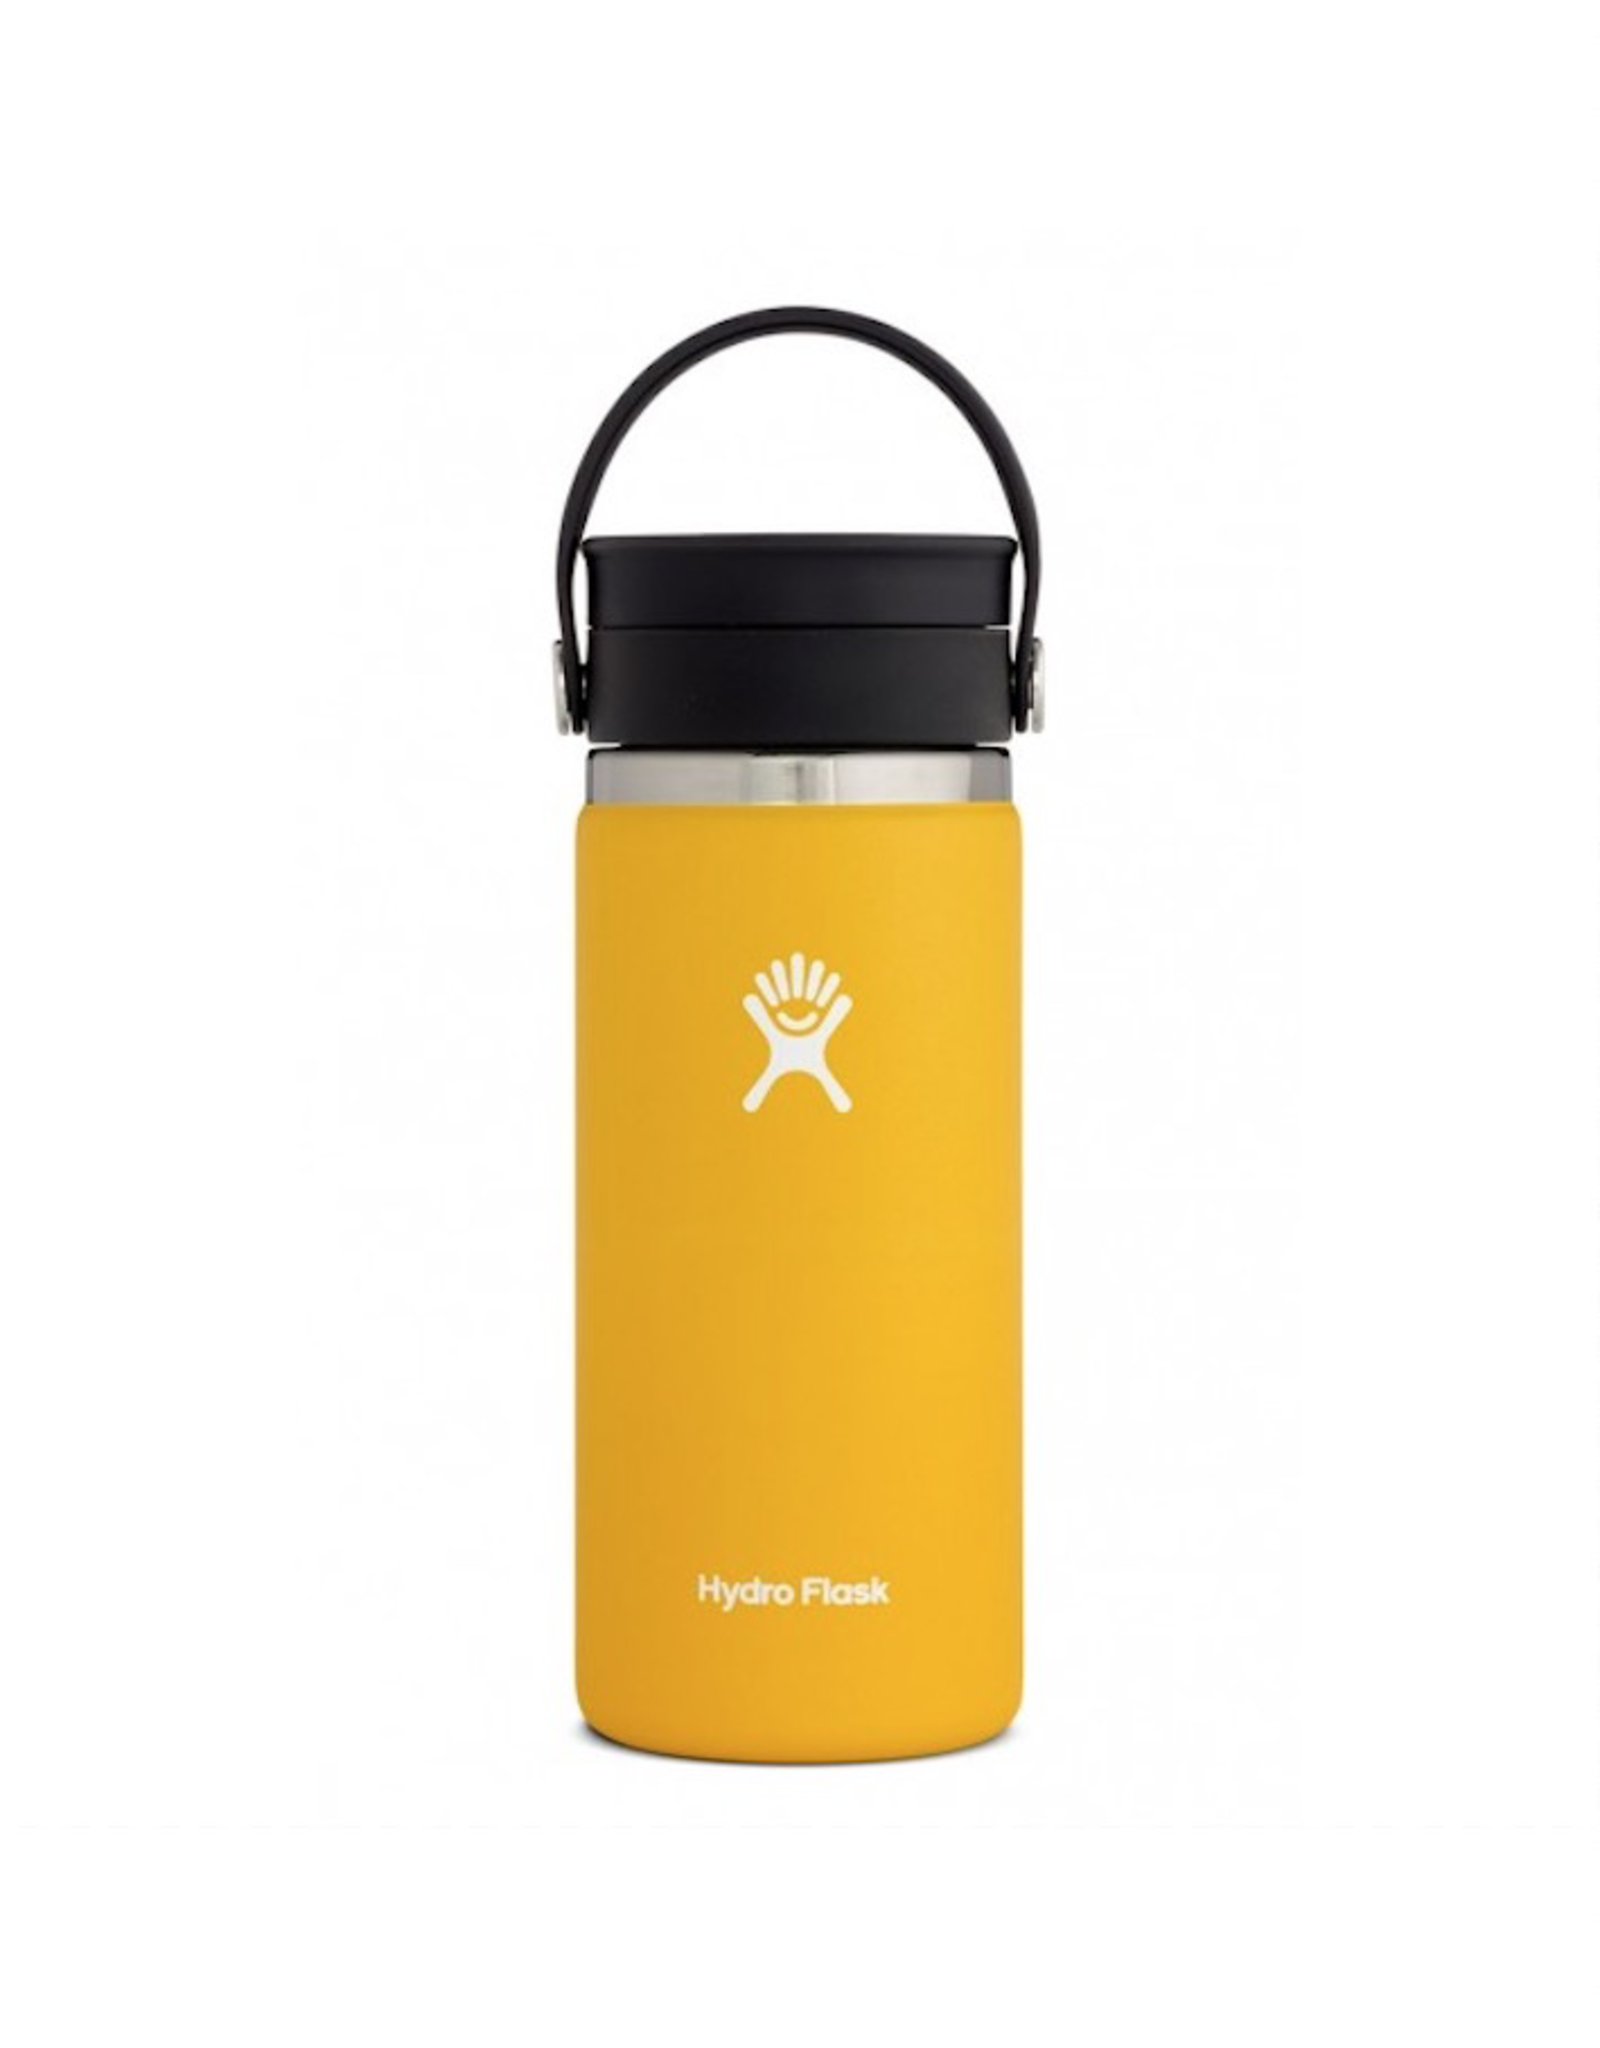 Hydro Flask 16 oz Wide Mouth  Flex Sip Lid Bottle in Sunflower